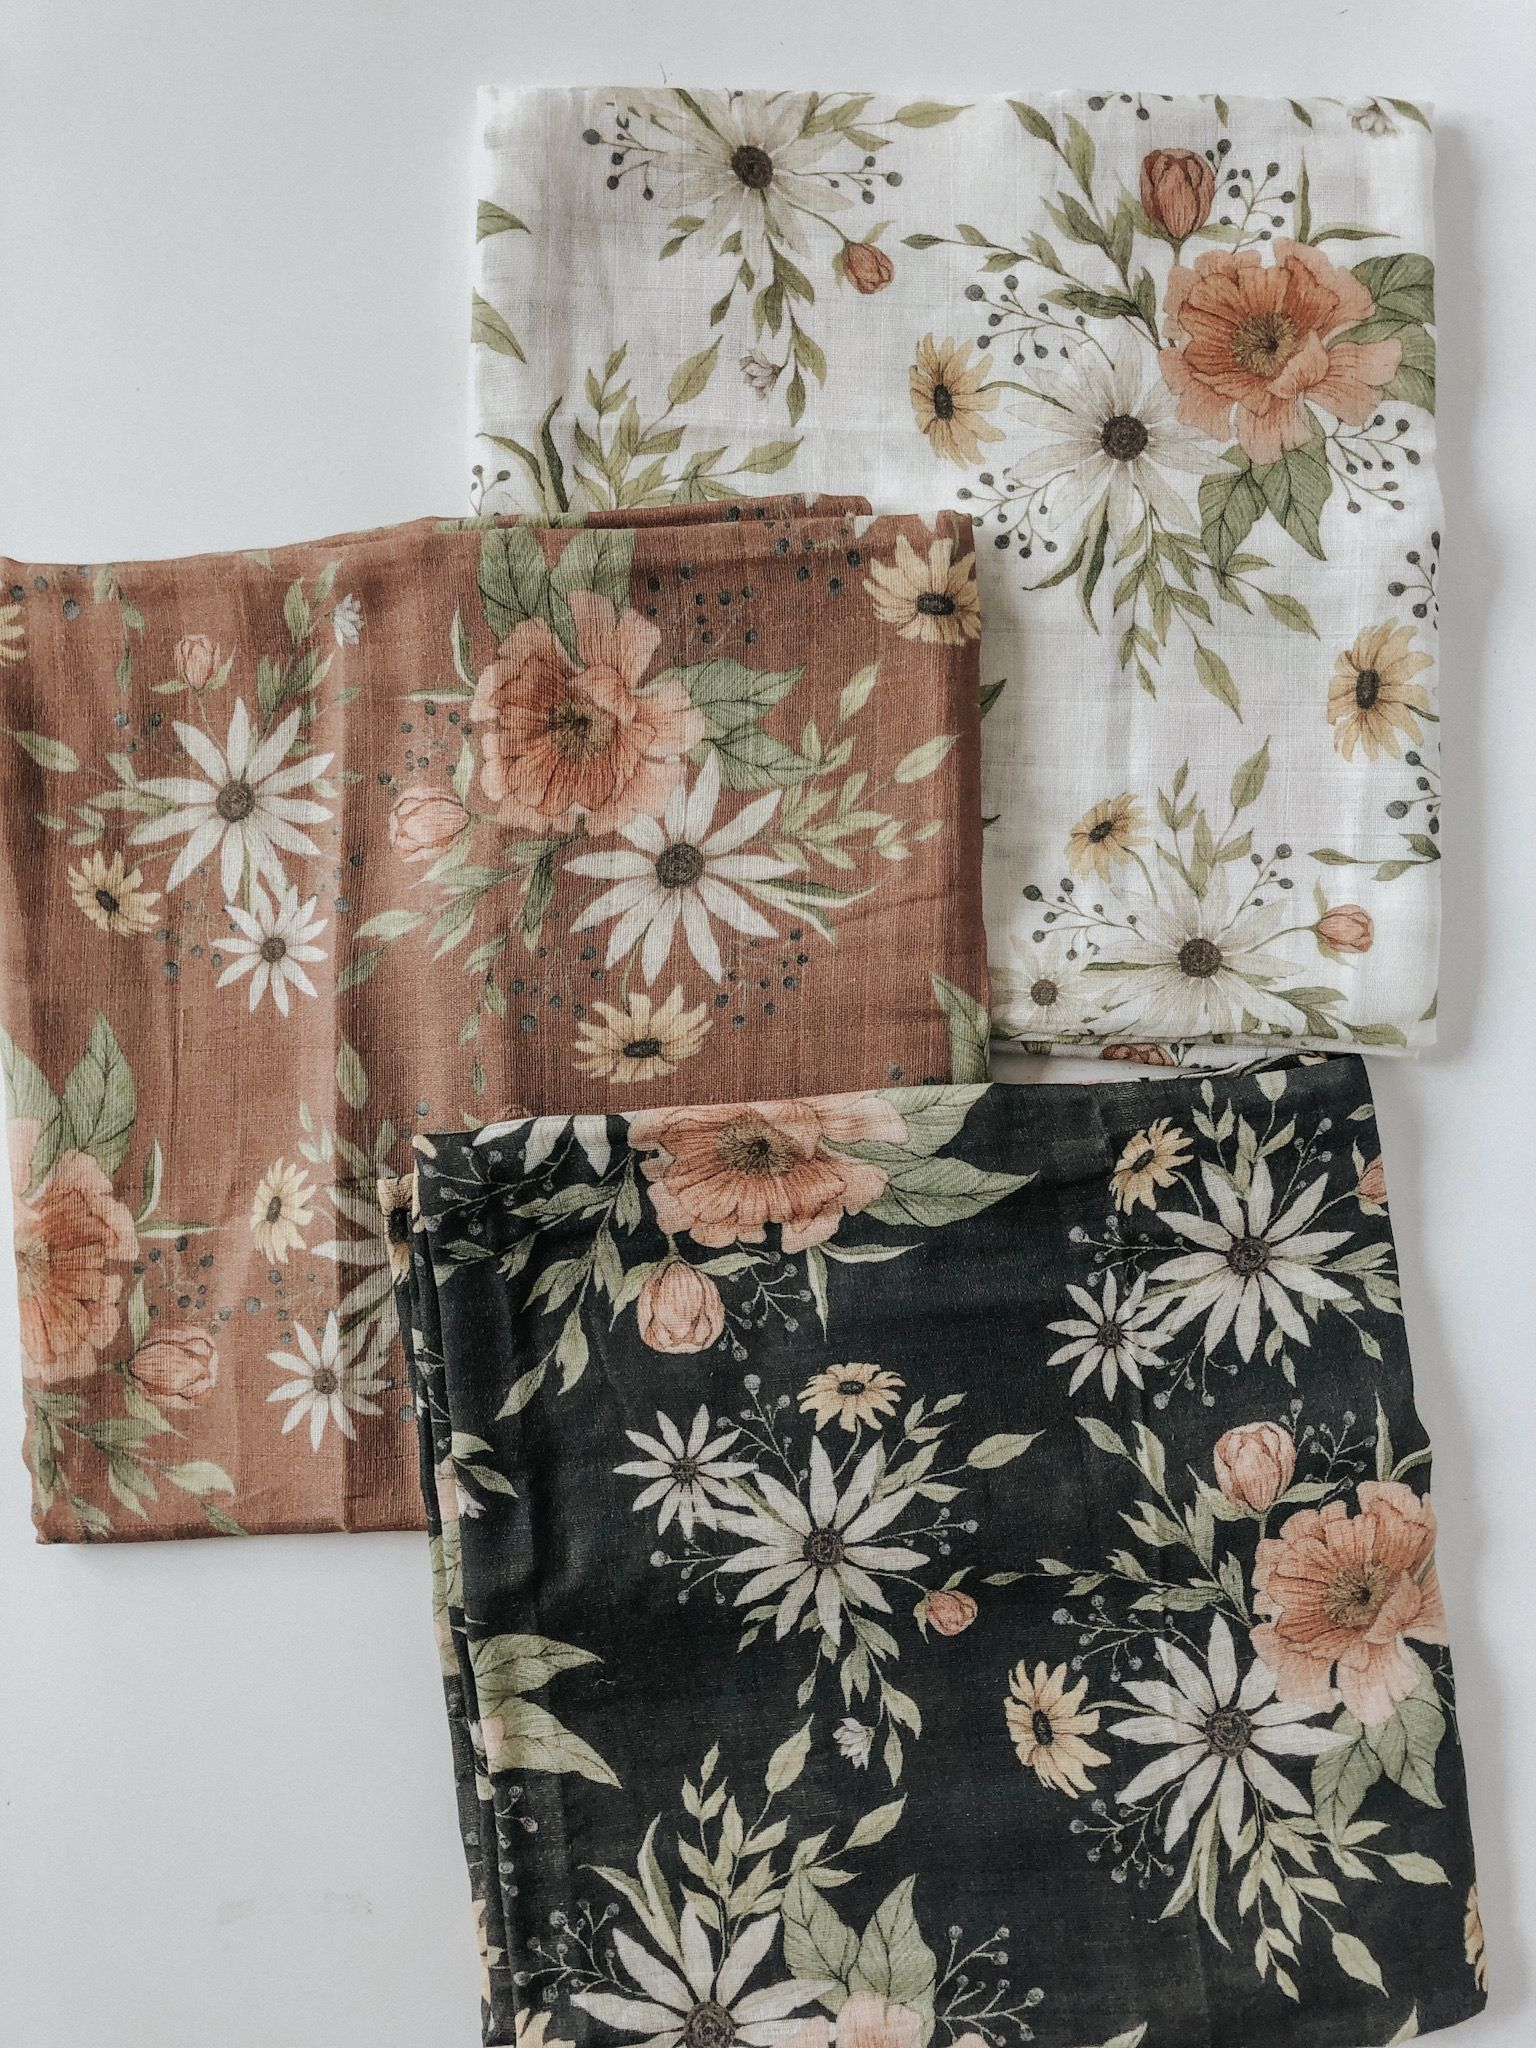 Beautiful Floral Illustrations On Baby Swaddle Blankets Boho Baby Quilt Baby Swaddle Blankets Neutral Baby Quilt